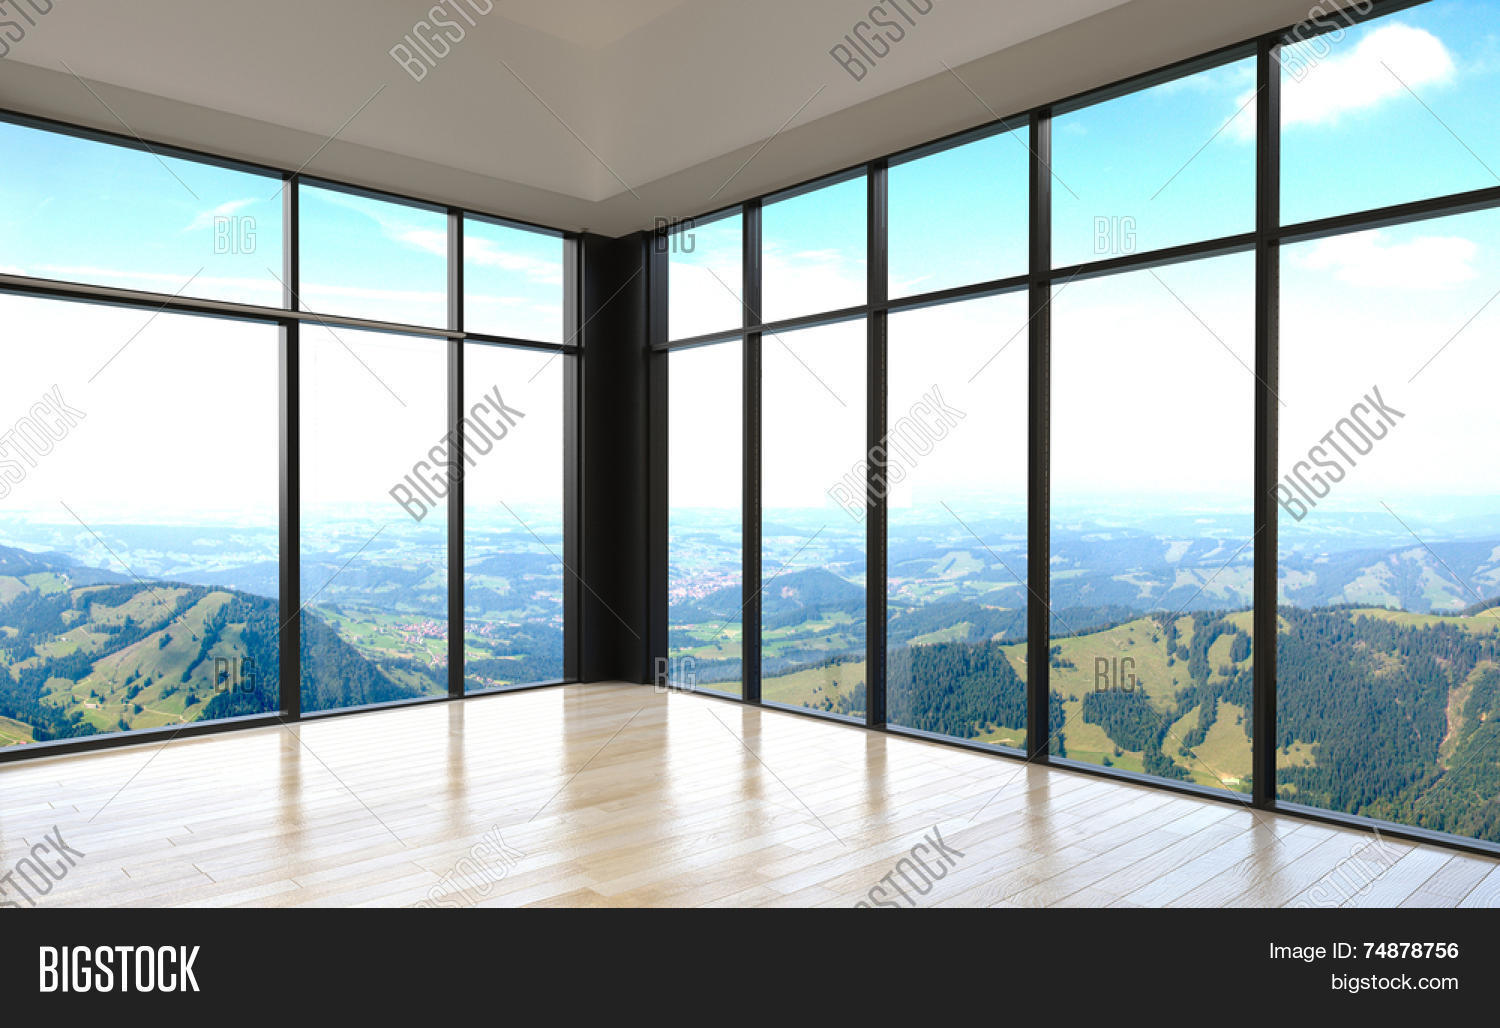 3d rendering simple stylish empty image photo bigstock for Basic 3d room design